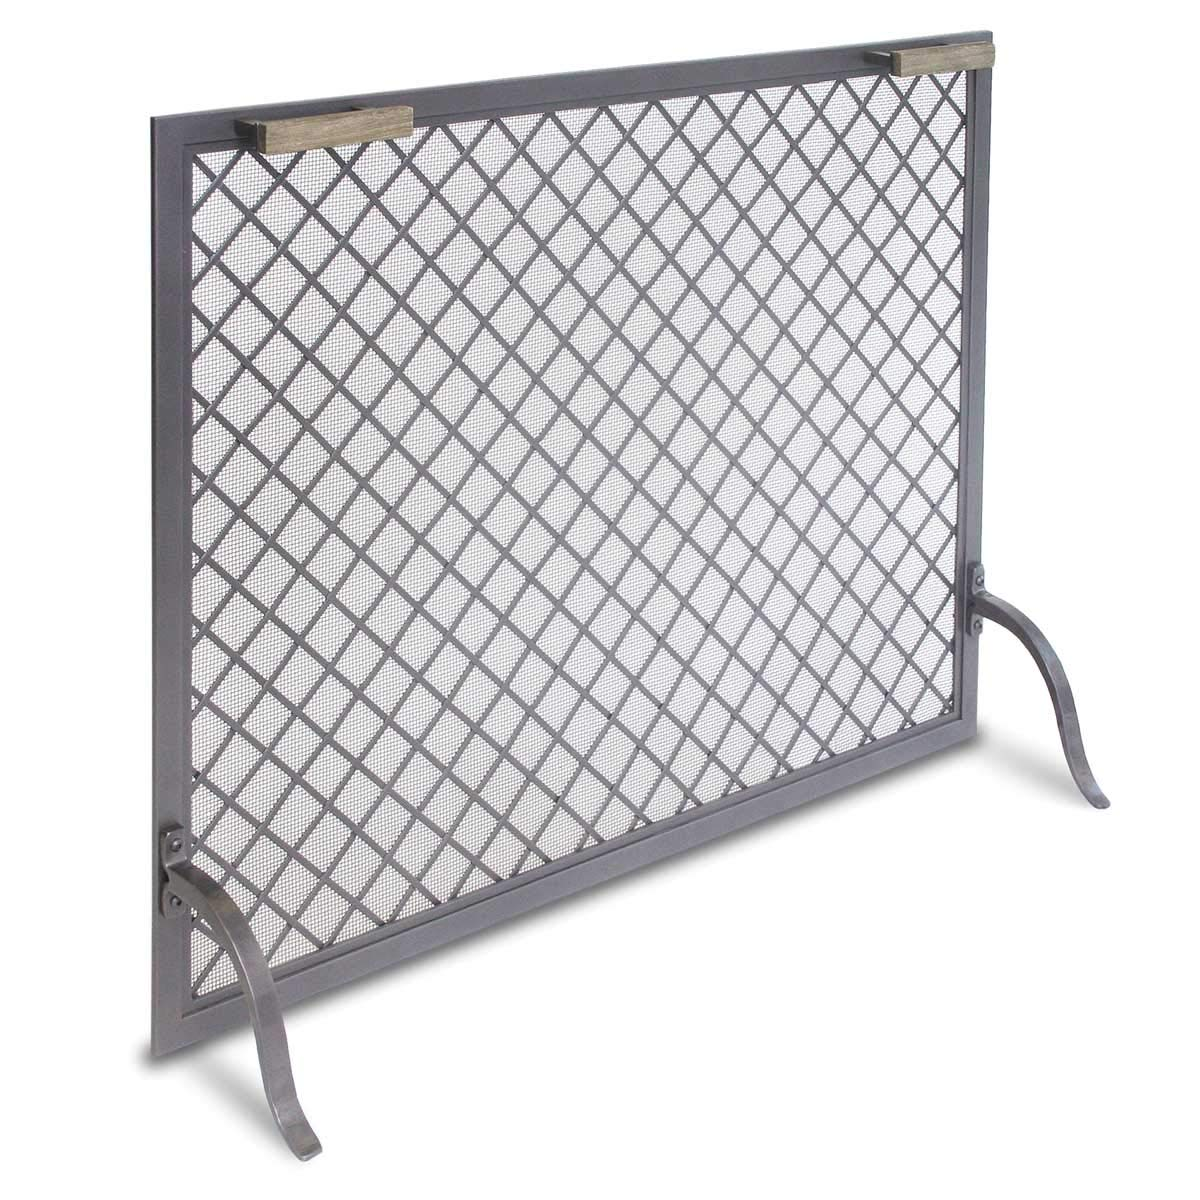 """Pilgrim Home and Hearth 18317 Stanton Single Panel Fireplace Screen, Natural Iron, 39""""W x 31""""H x 12""""D, 22 lbs,"""